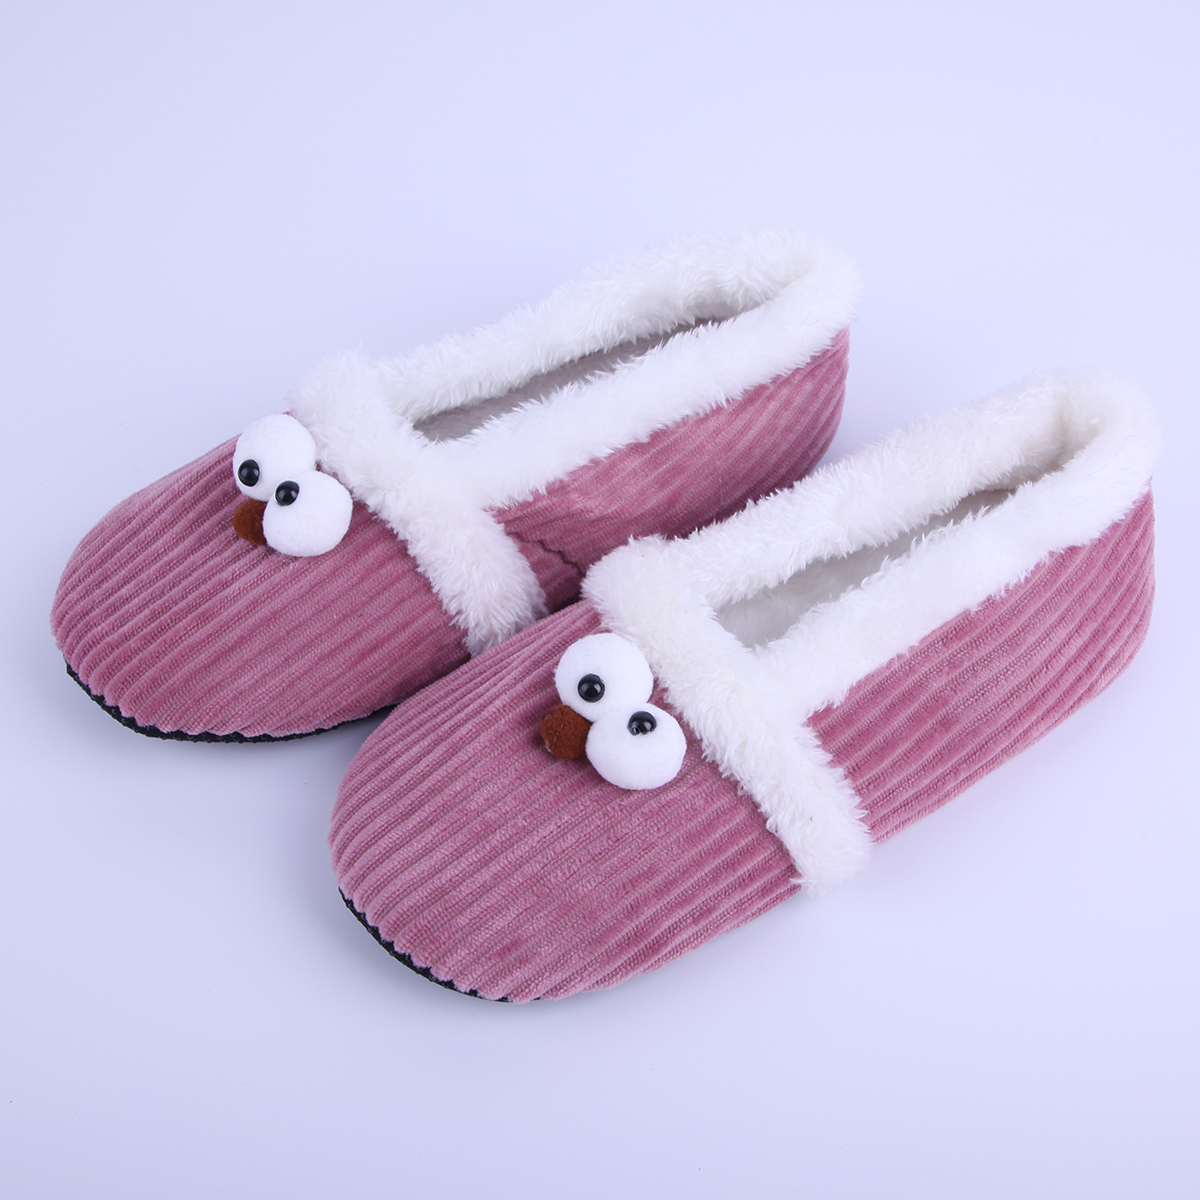 New Warm Soft Sole Women Indoor Floor Slippers/Shoes Wool Slippers Flannel Flat Animal Modelling Home Slippers